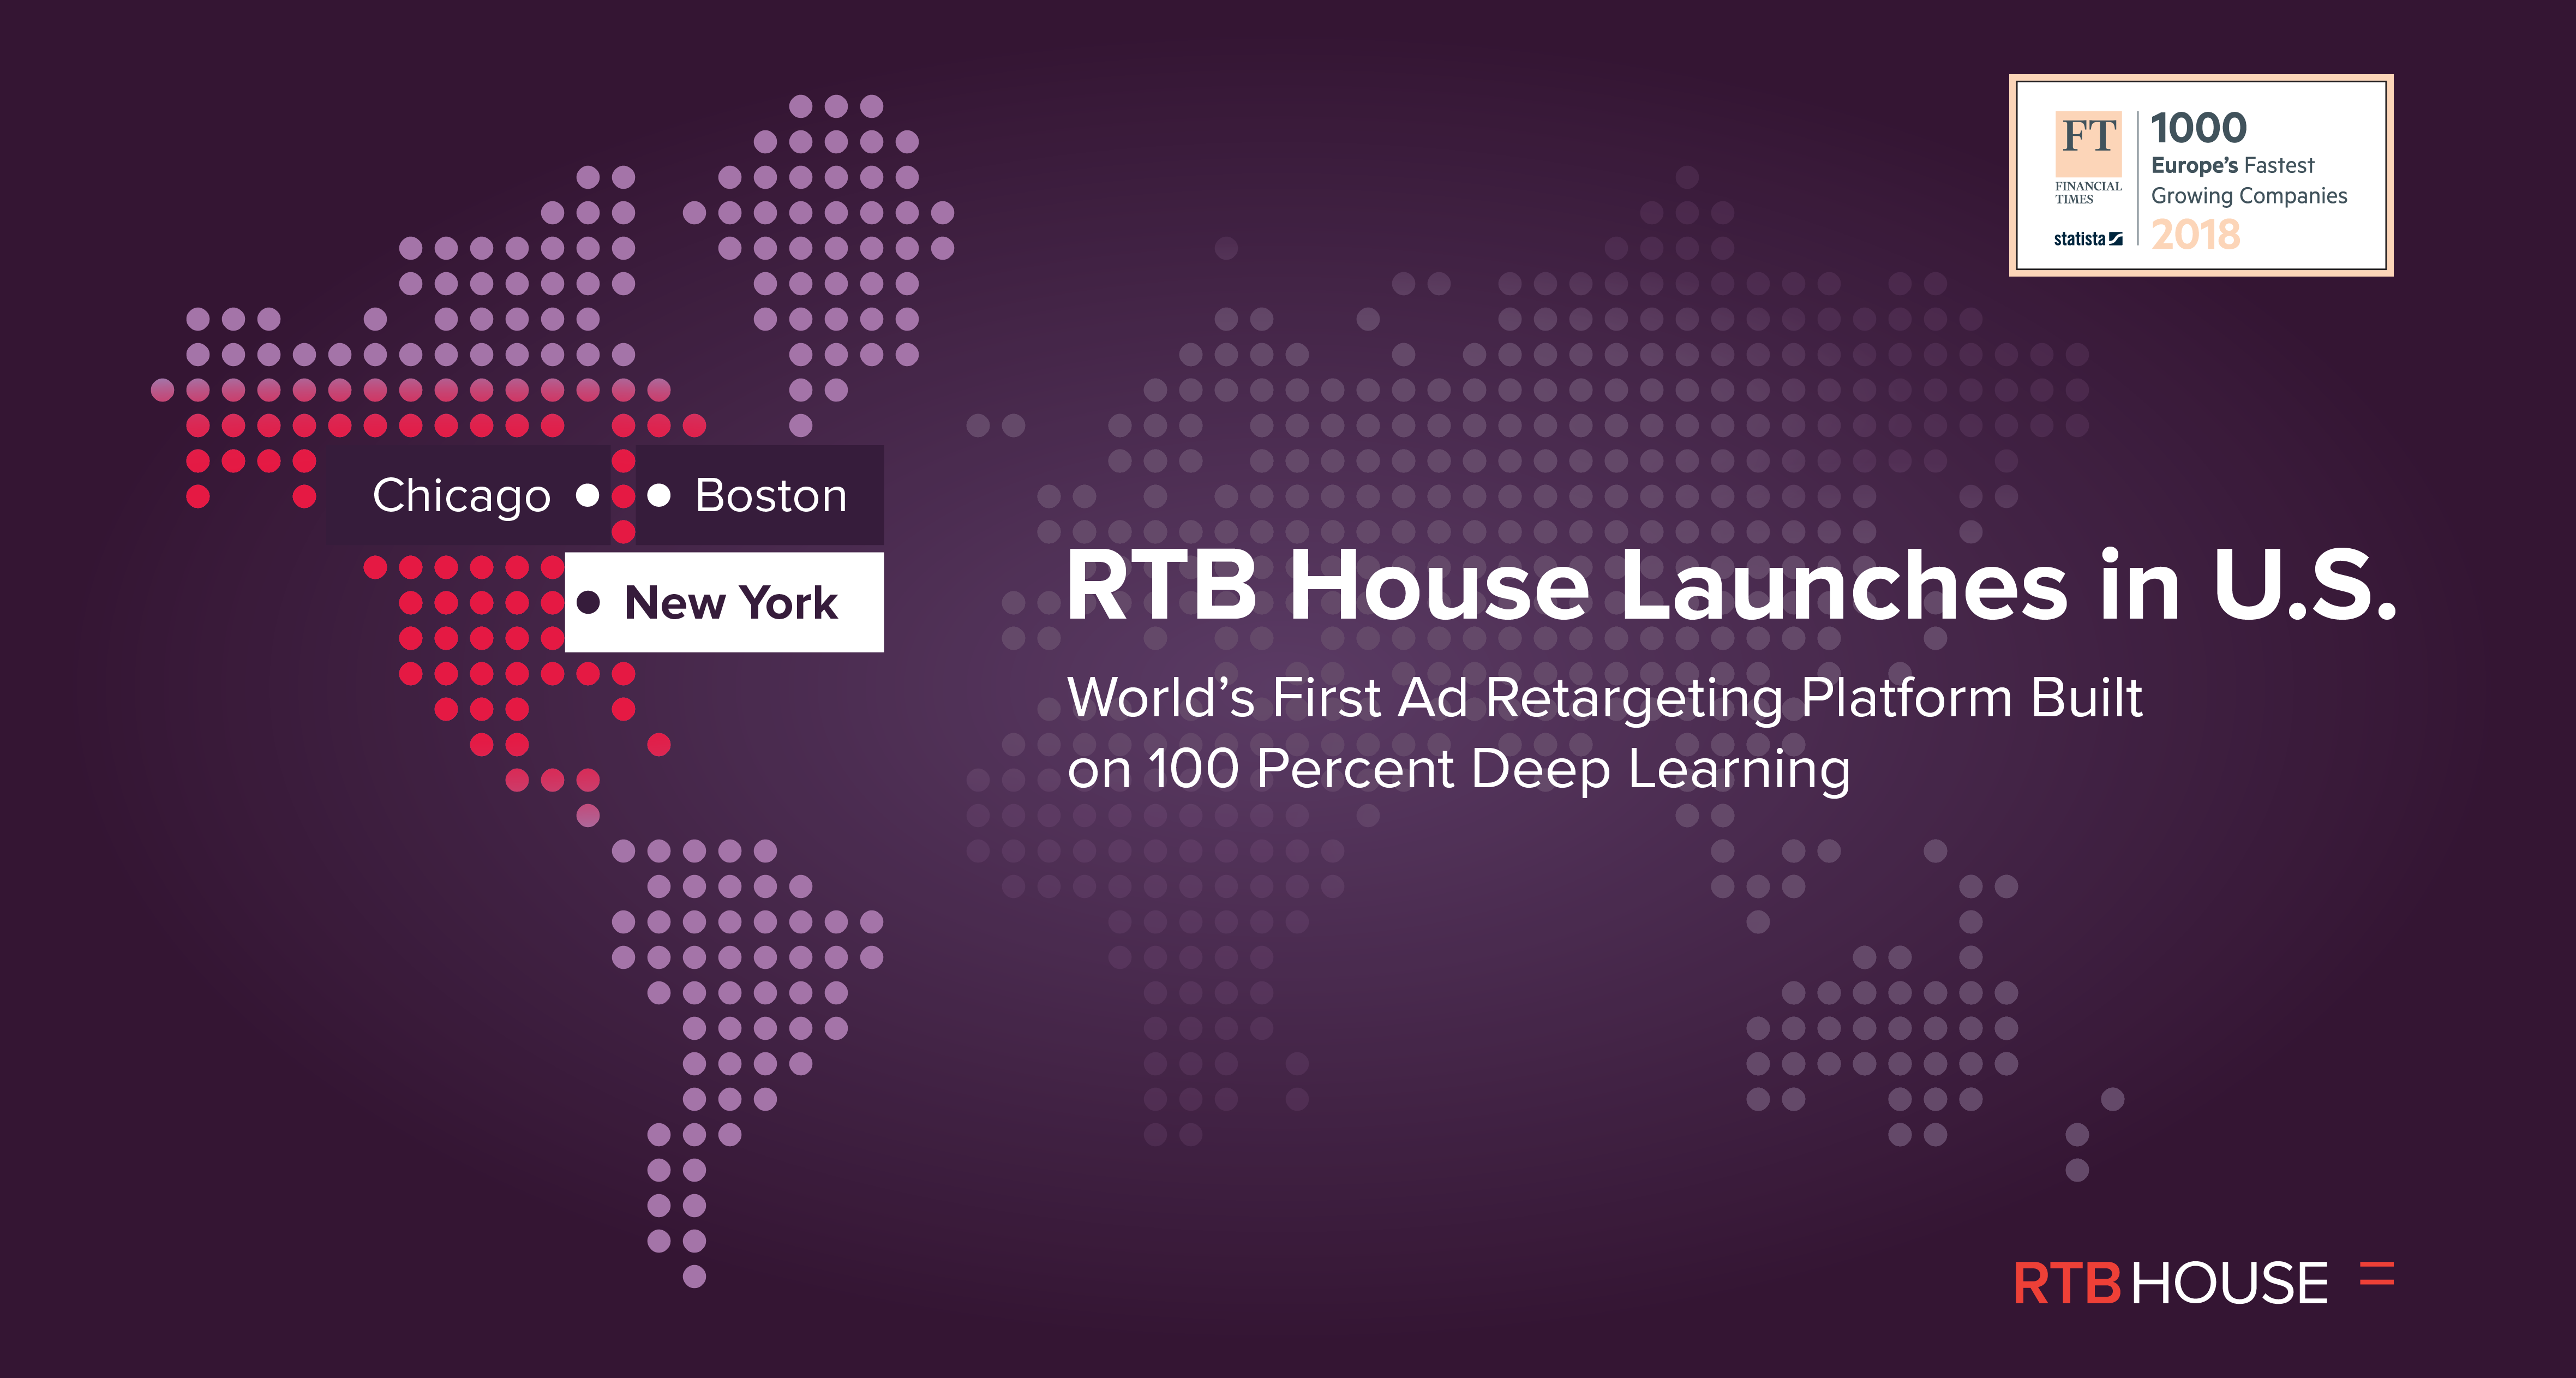 rtb house launches in u.s.